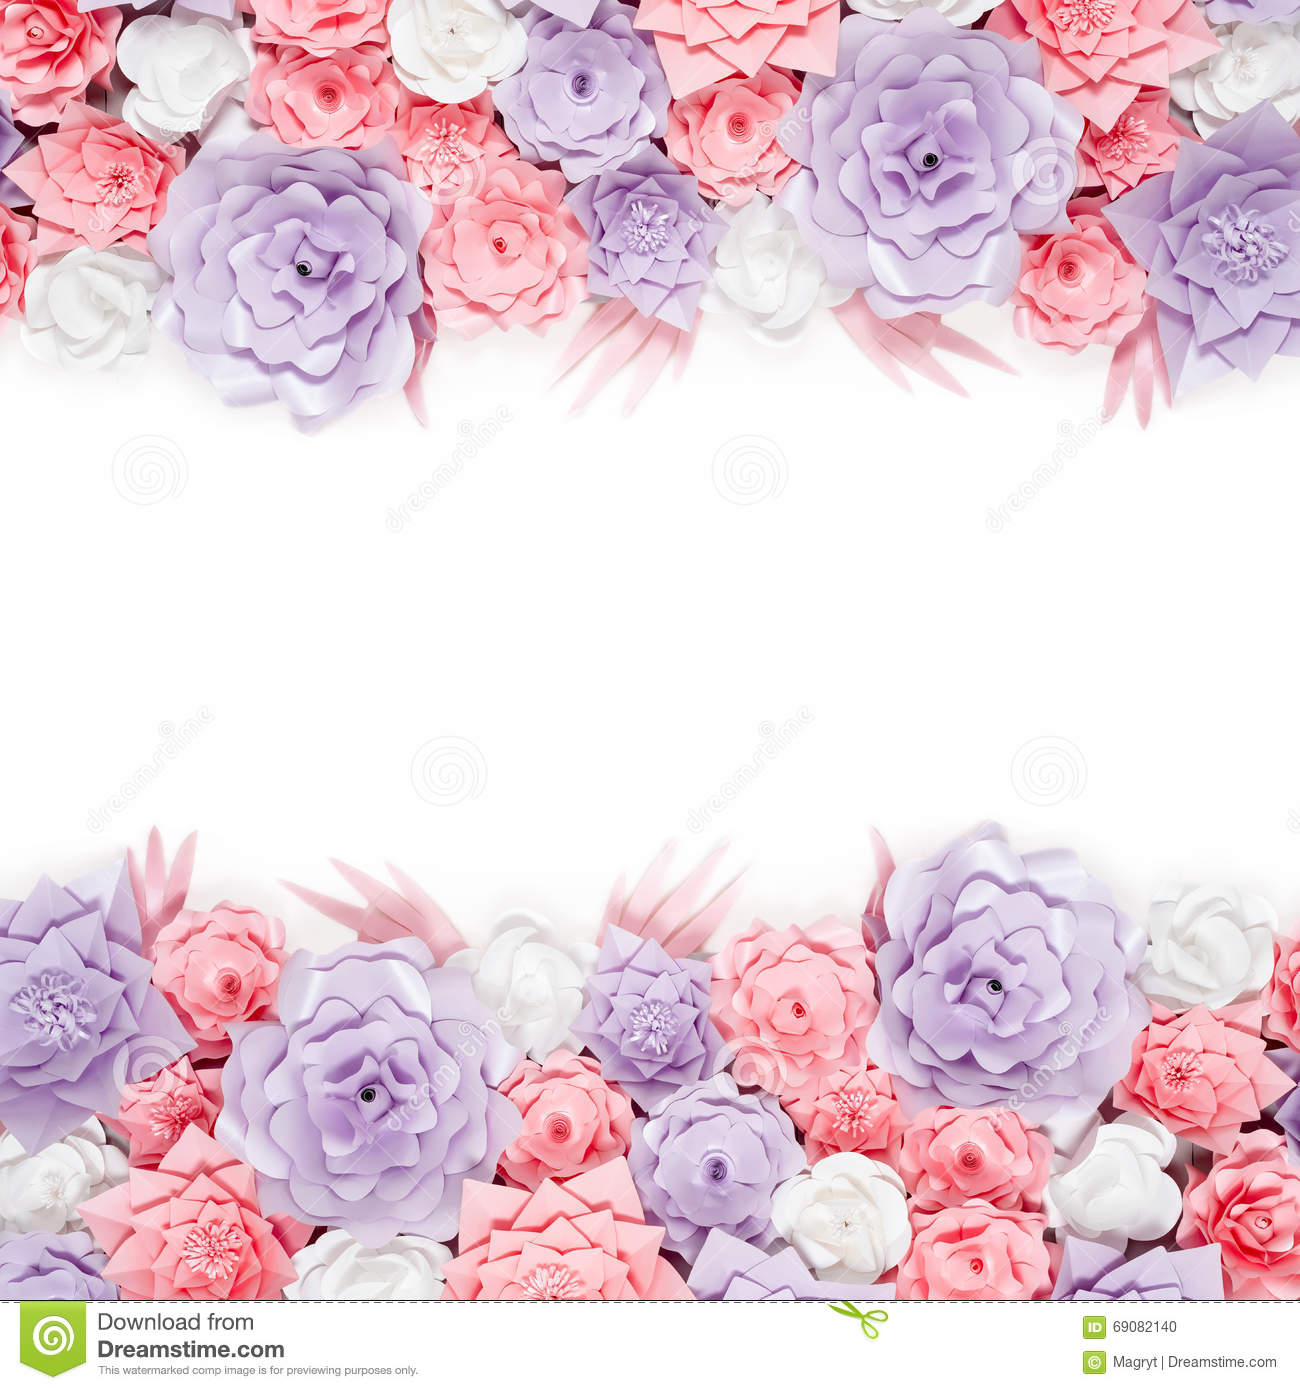 Colorful Paper Flowers Background Floral Backdrop With Handmade